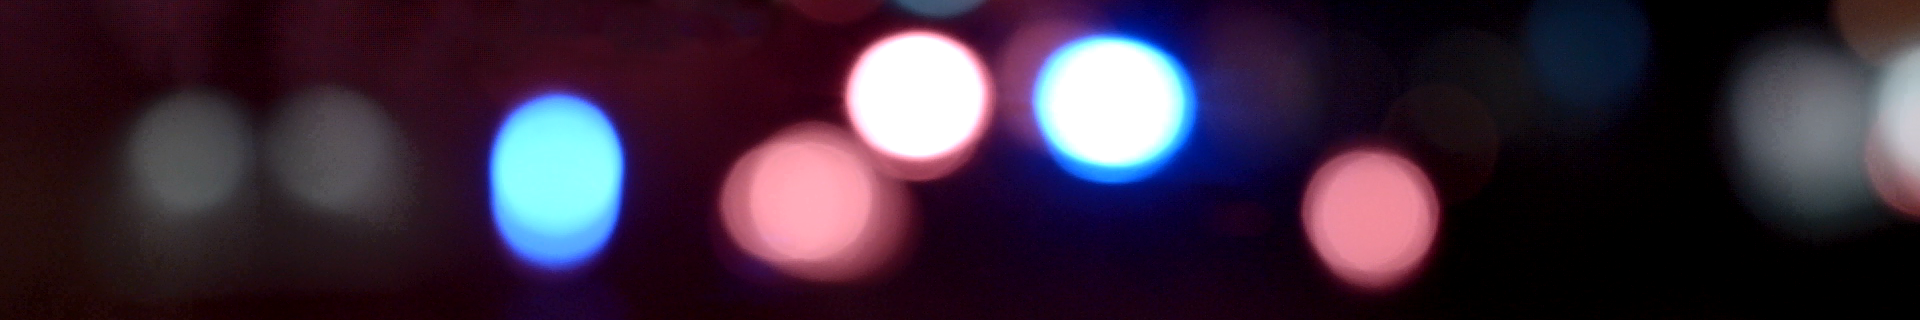 Blurry Police Lights